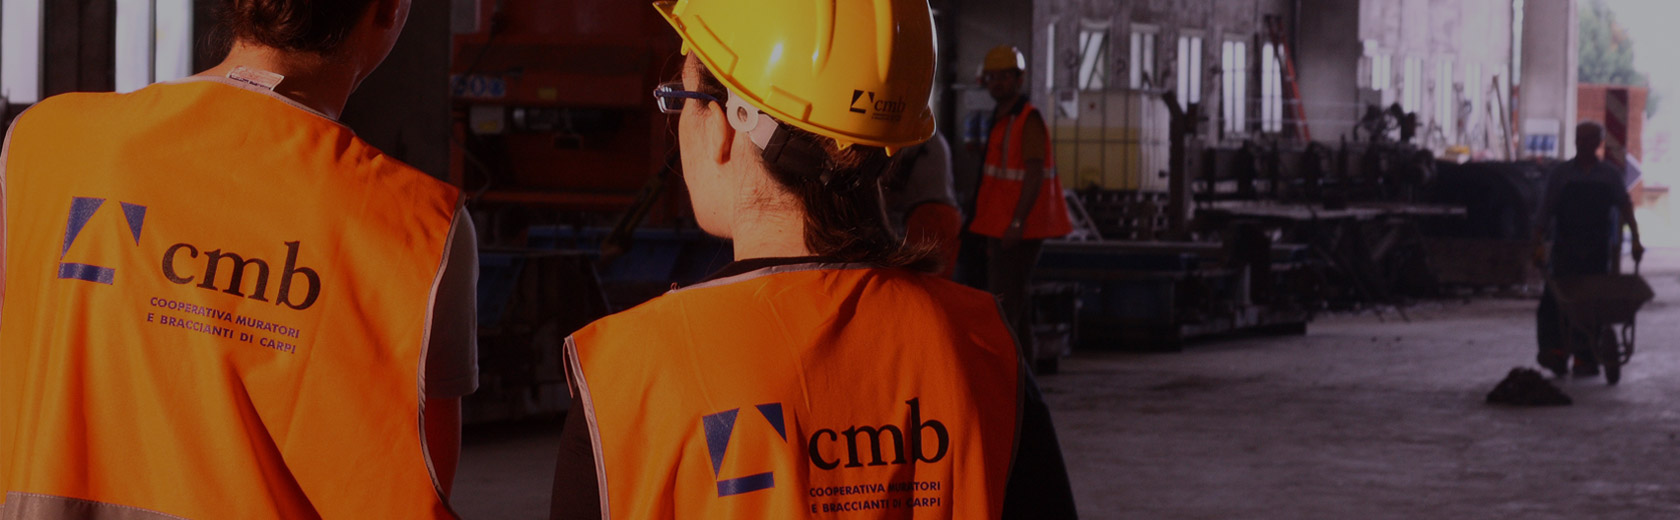 cmb-azienda-impegno-enterprise-commitment-new